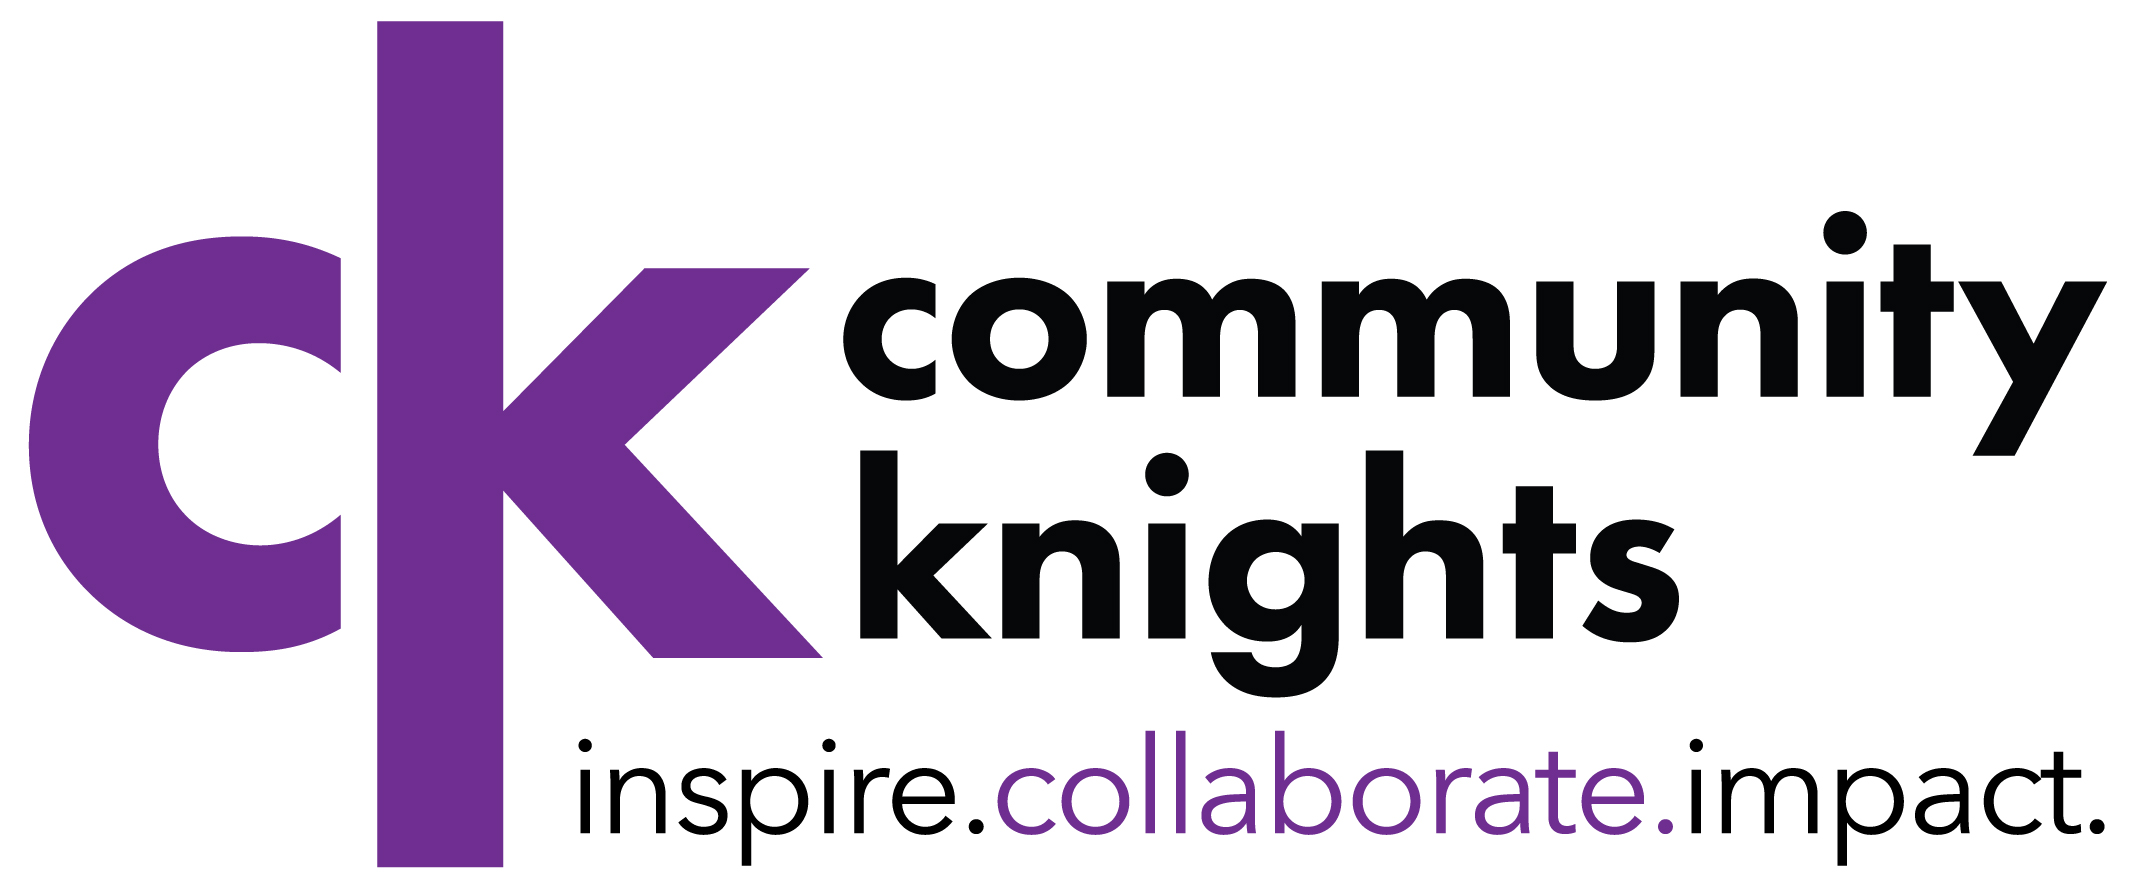 CommunityKnights_LOGO2